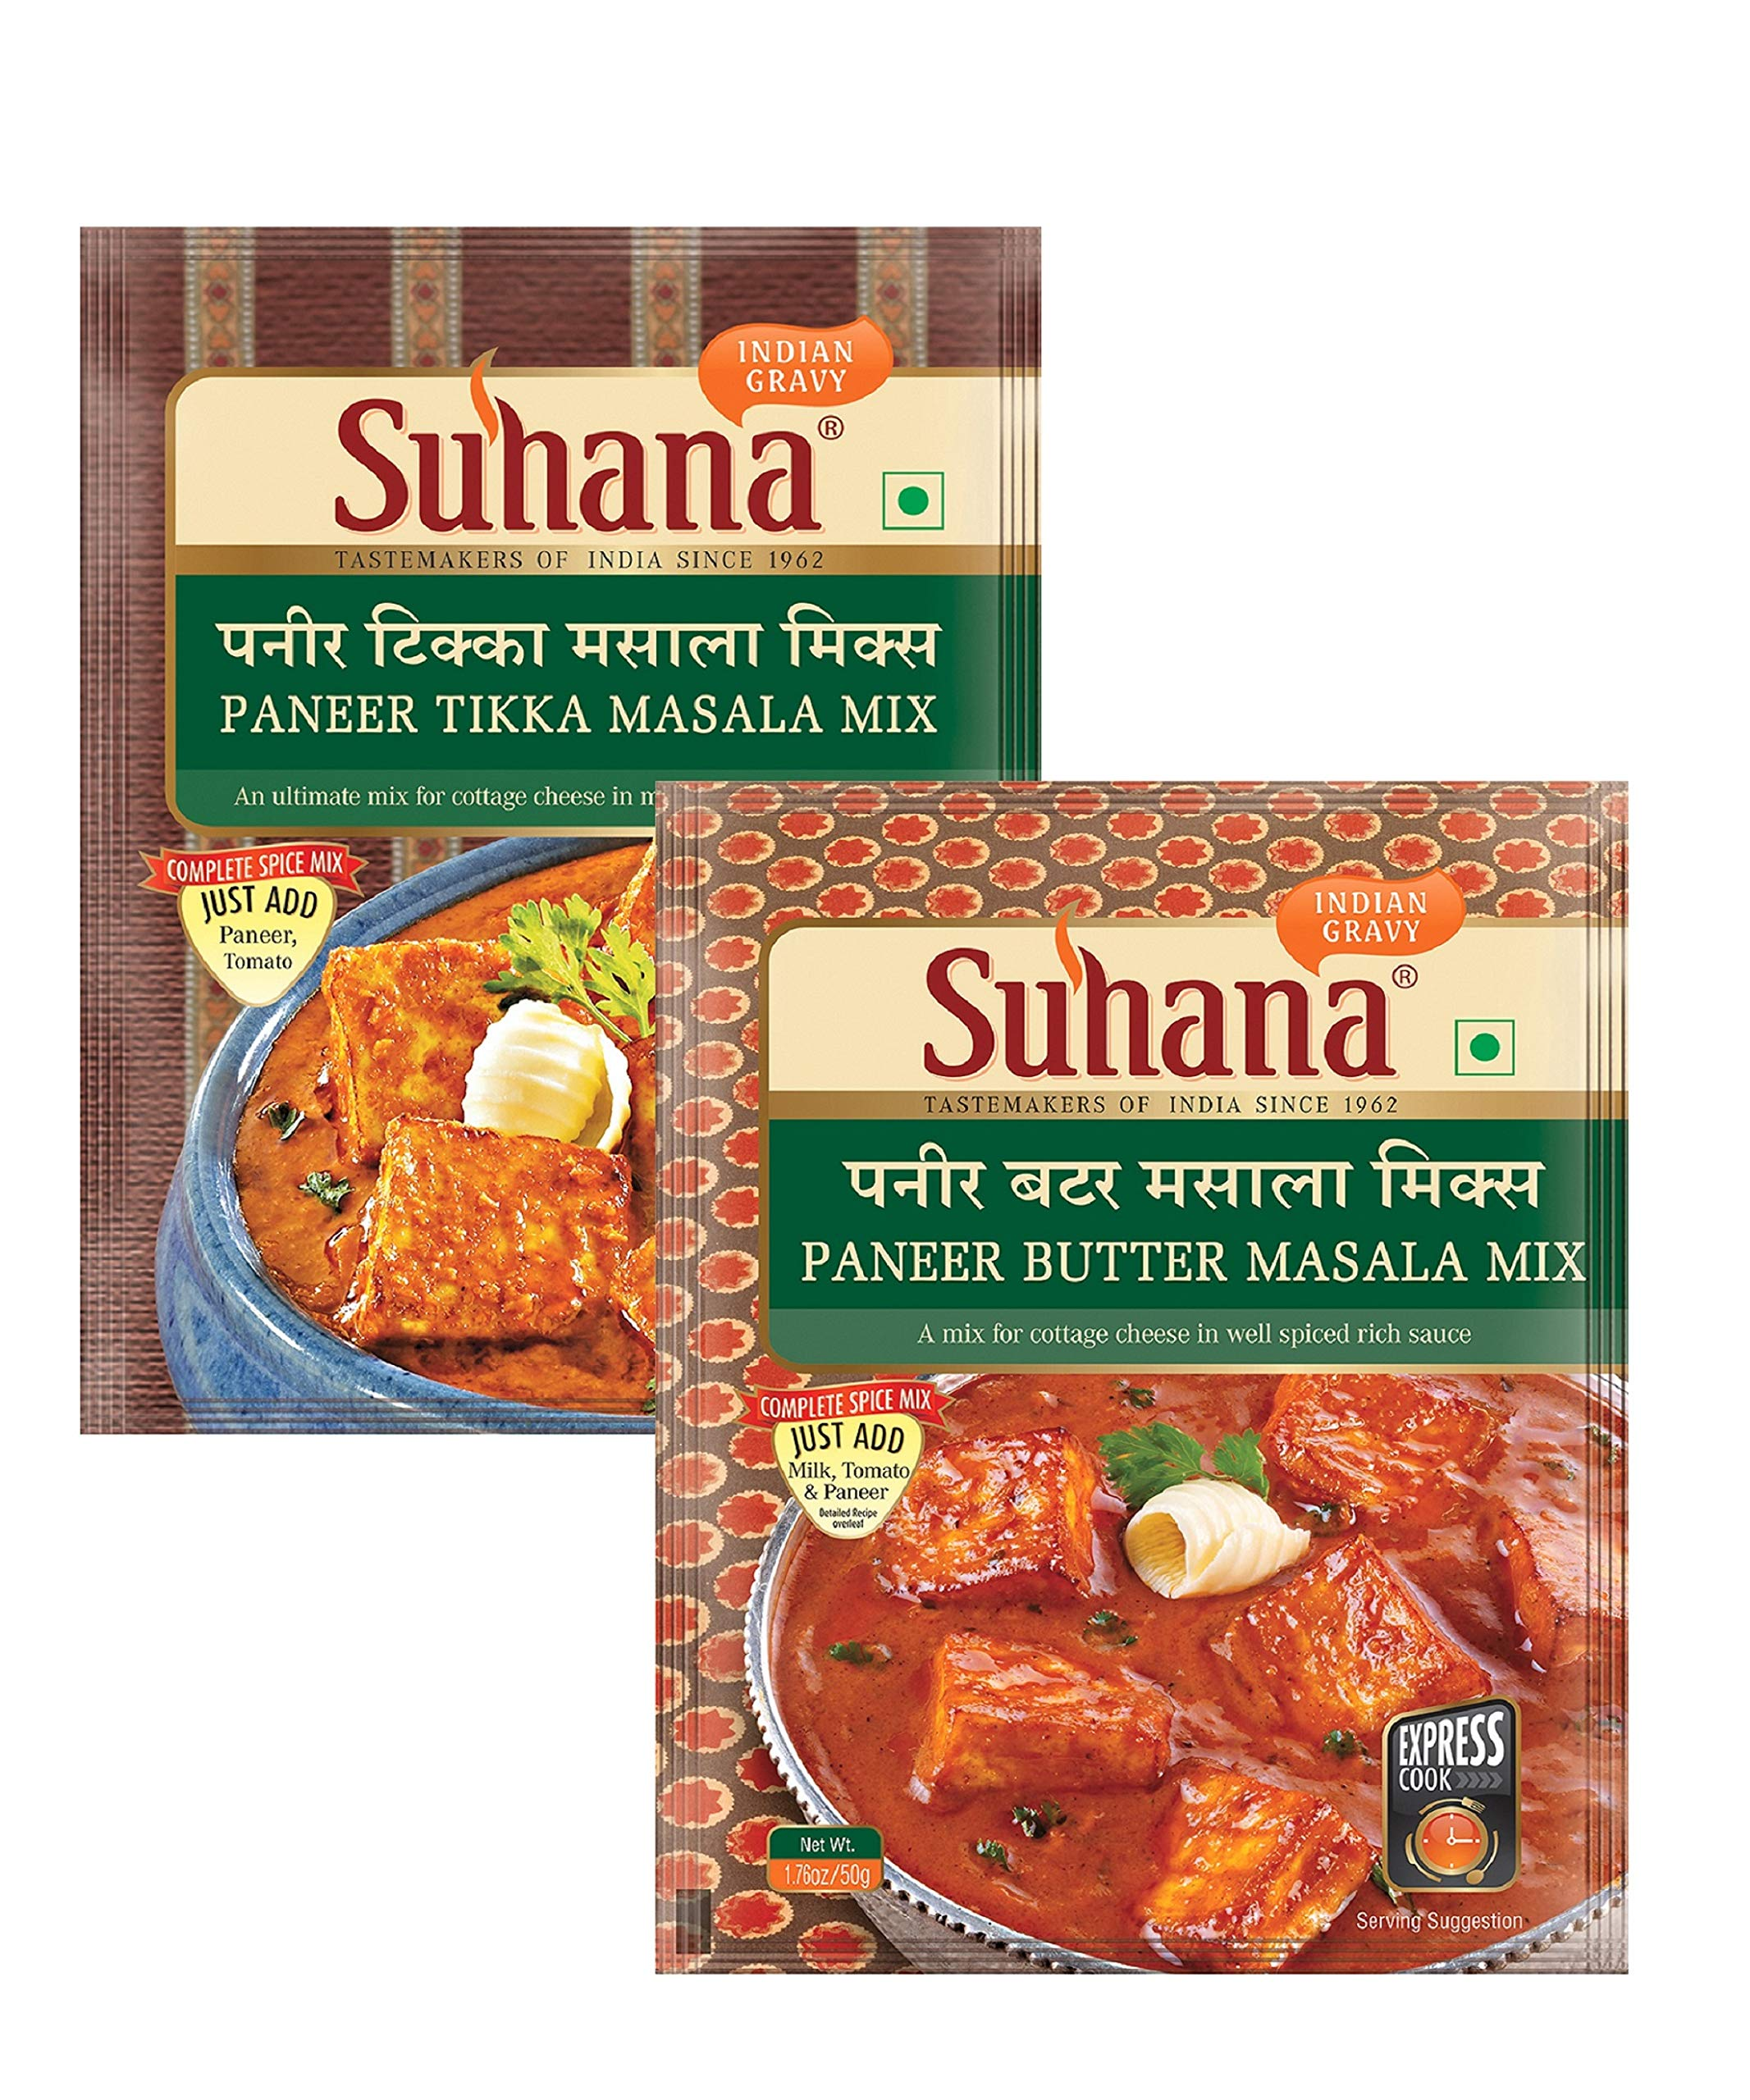 Suhana Paneer Butter 50g x 4, Paneer Tikka 50g x 4 - Combo of 8 | Easy to Cook | Spice Mix